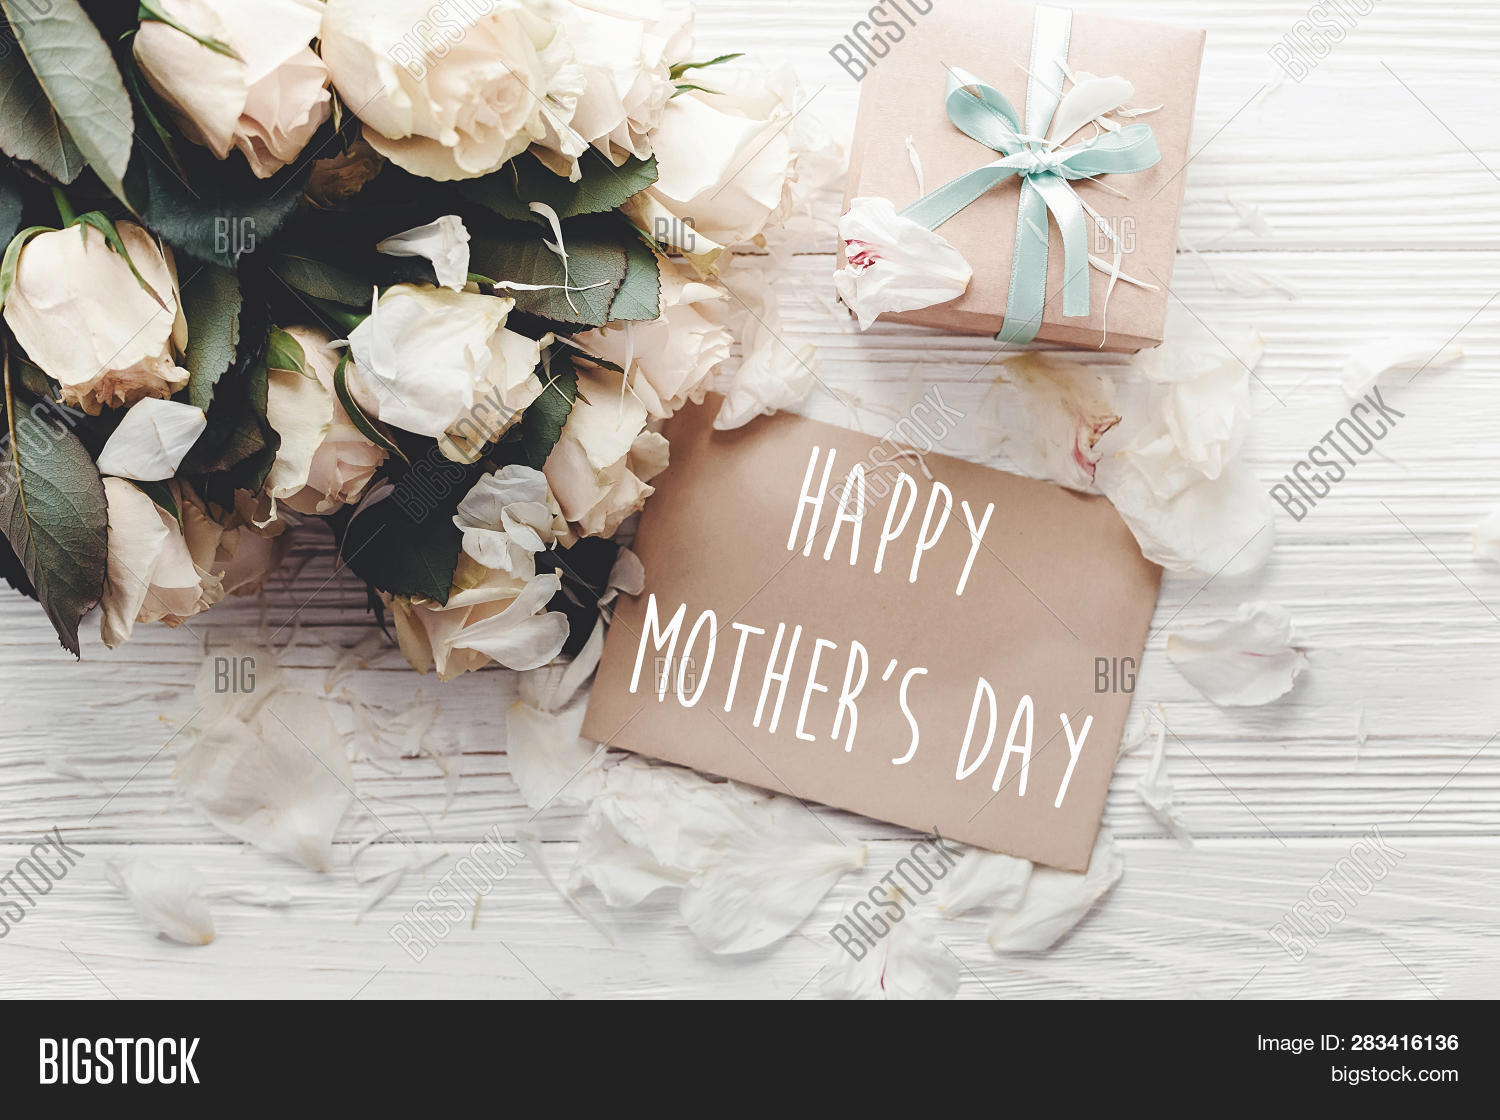 Happy Mother's Day Text Sign On Craft Greeting Card And White Roses Bouquet, Gift Box On Wooden Back